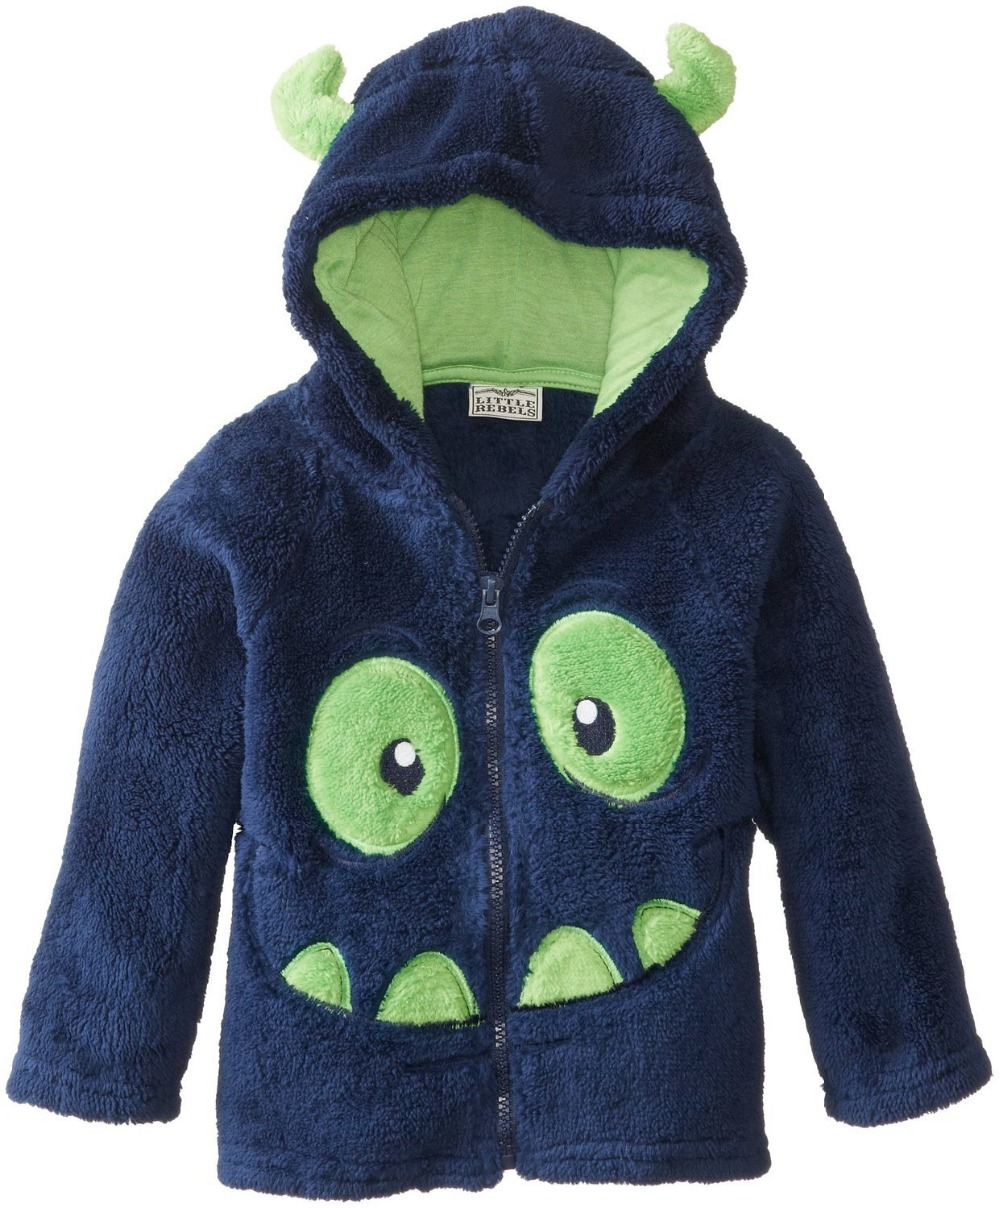 Autumn-Winter-Children-Jackets-Cute-Cartoon-Baby-Boy-Outerwear-Toddler-Clothes-Cardigan-Hooded-Sweater-Girl-Coats-0-5Year-BC1180-2